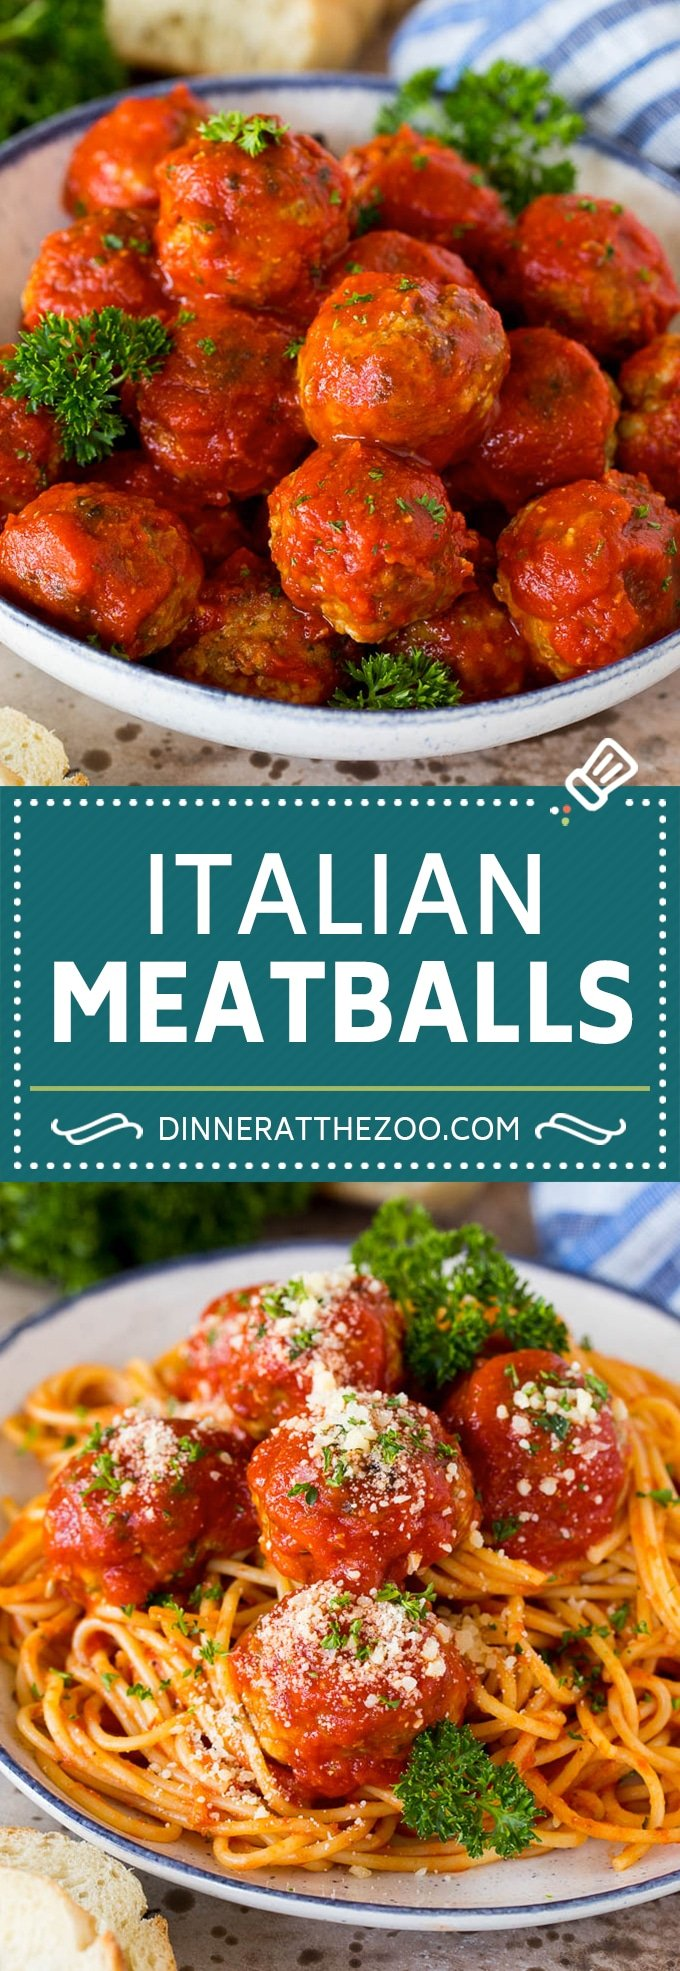 The best Italian meatballs with a blend of two types of meat and the perfect amount of herbs and spices.